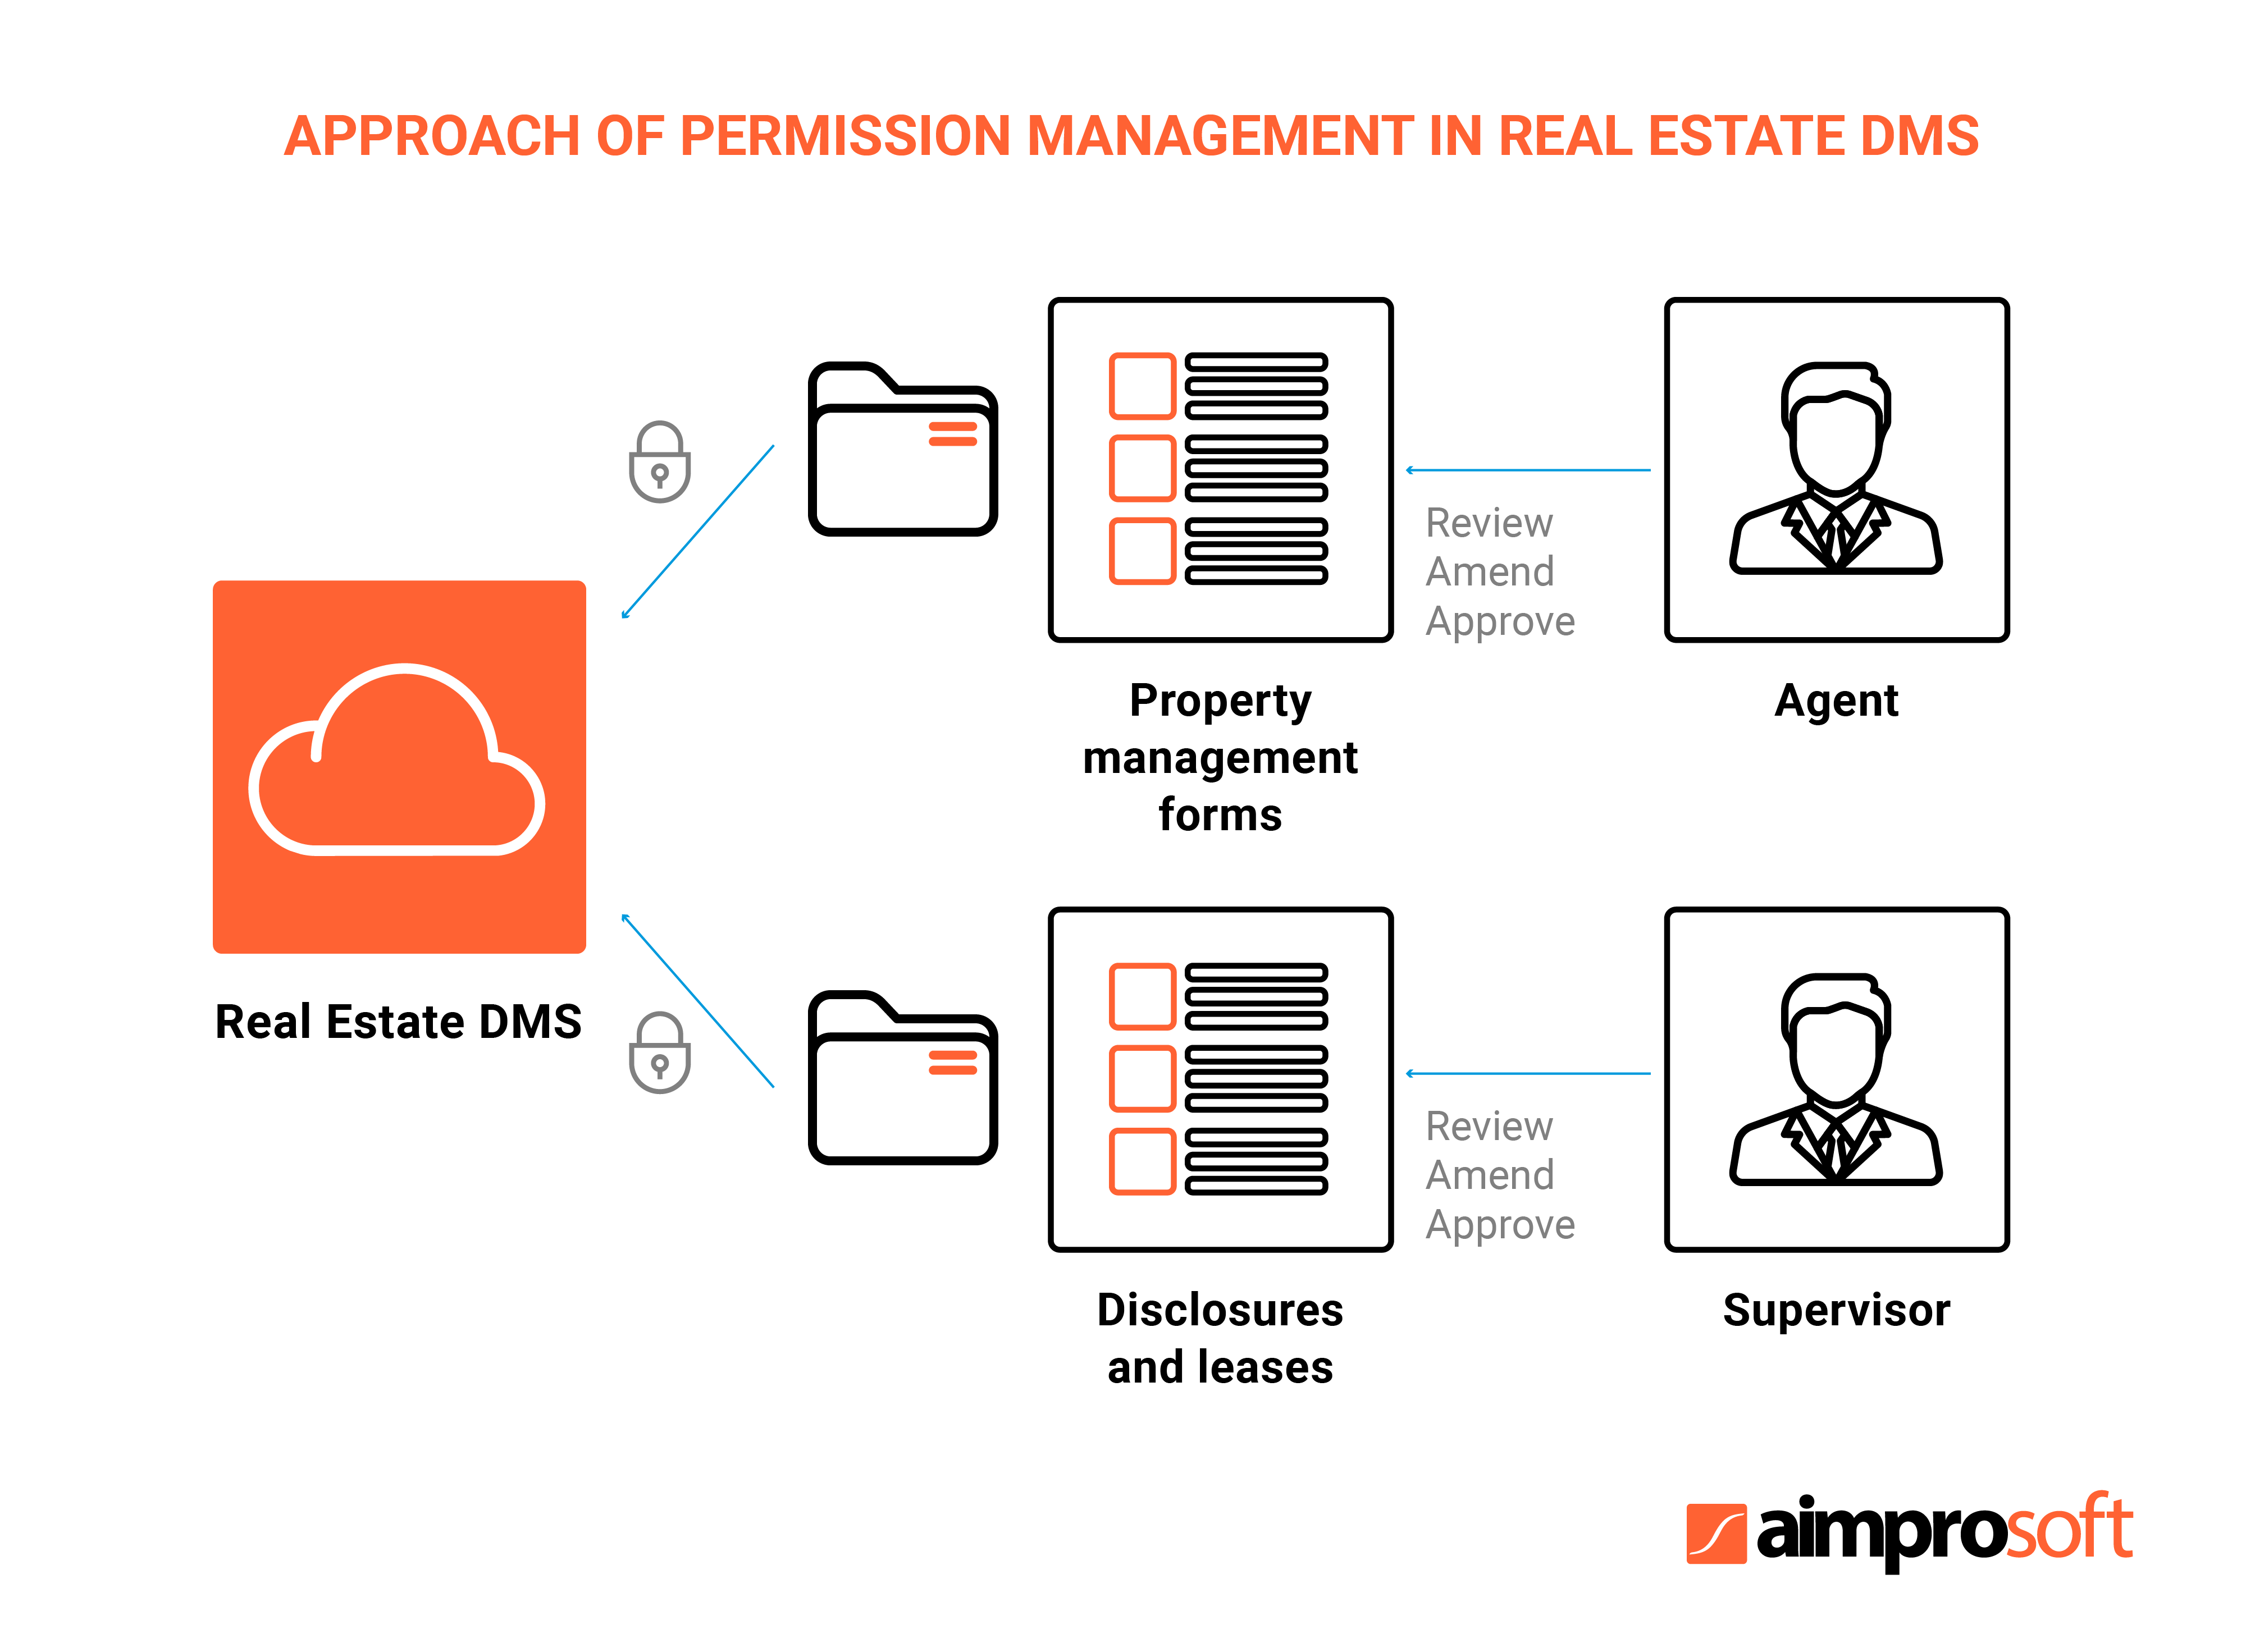 Real estate permission management in document management software